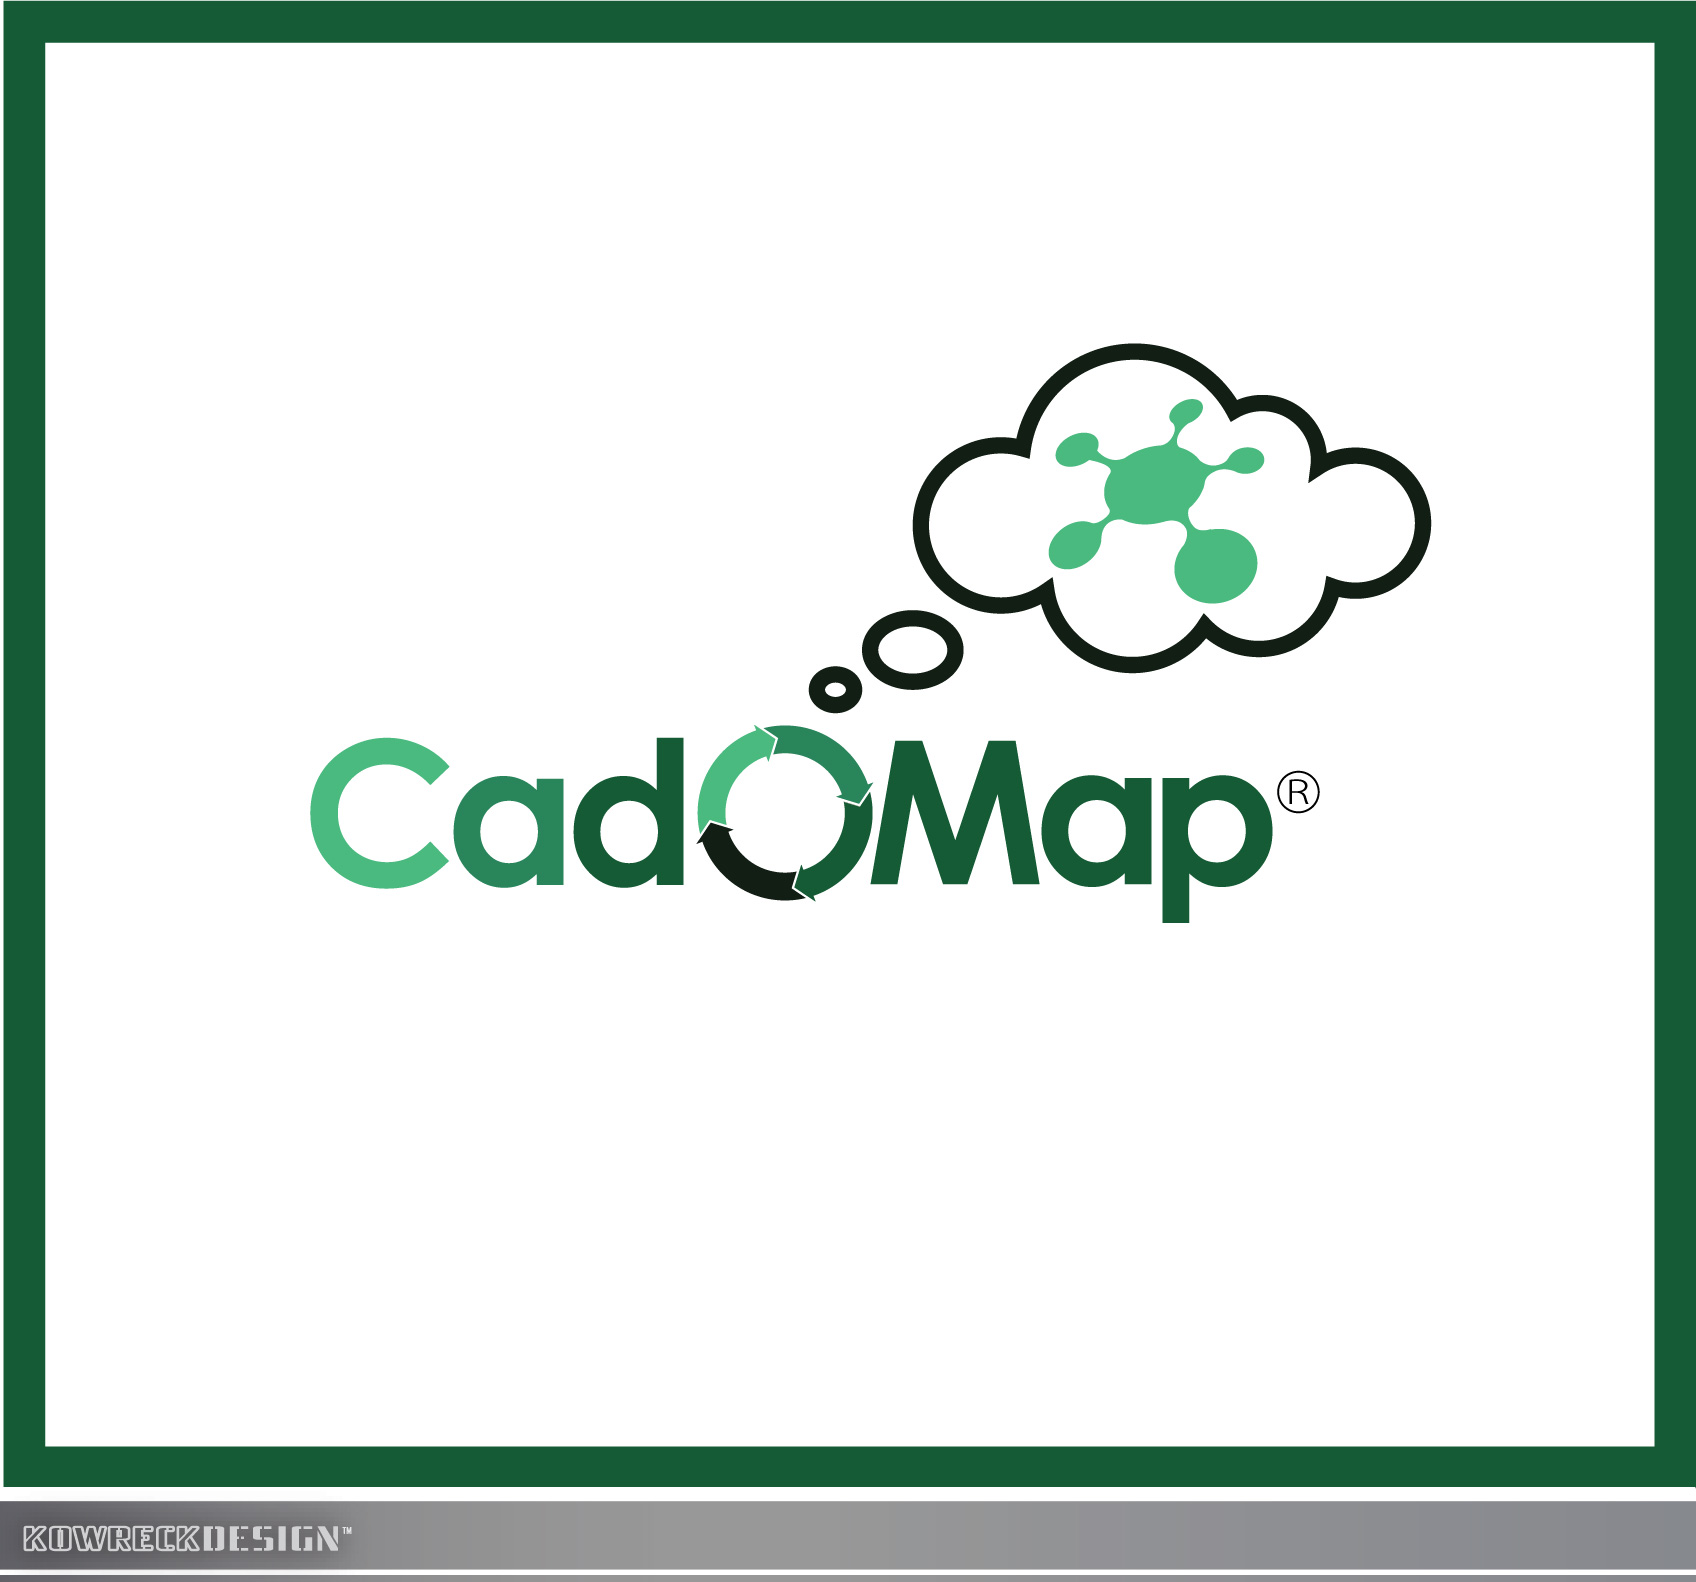 Logo Design by kowreck - Entry No. 84 in the Logo Design Contest Captivating Logo Design for CadOMap software product.